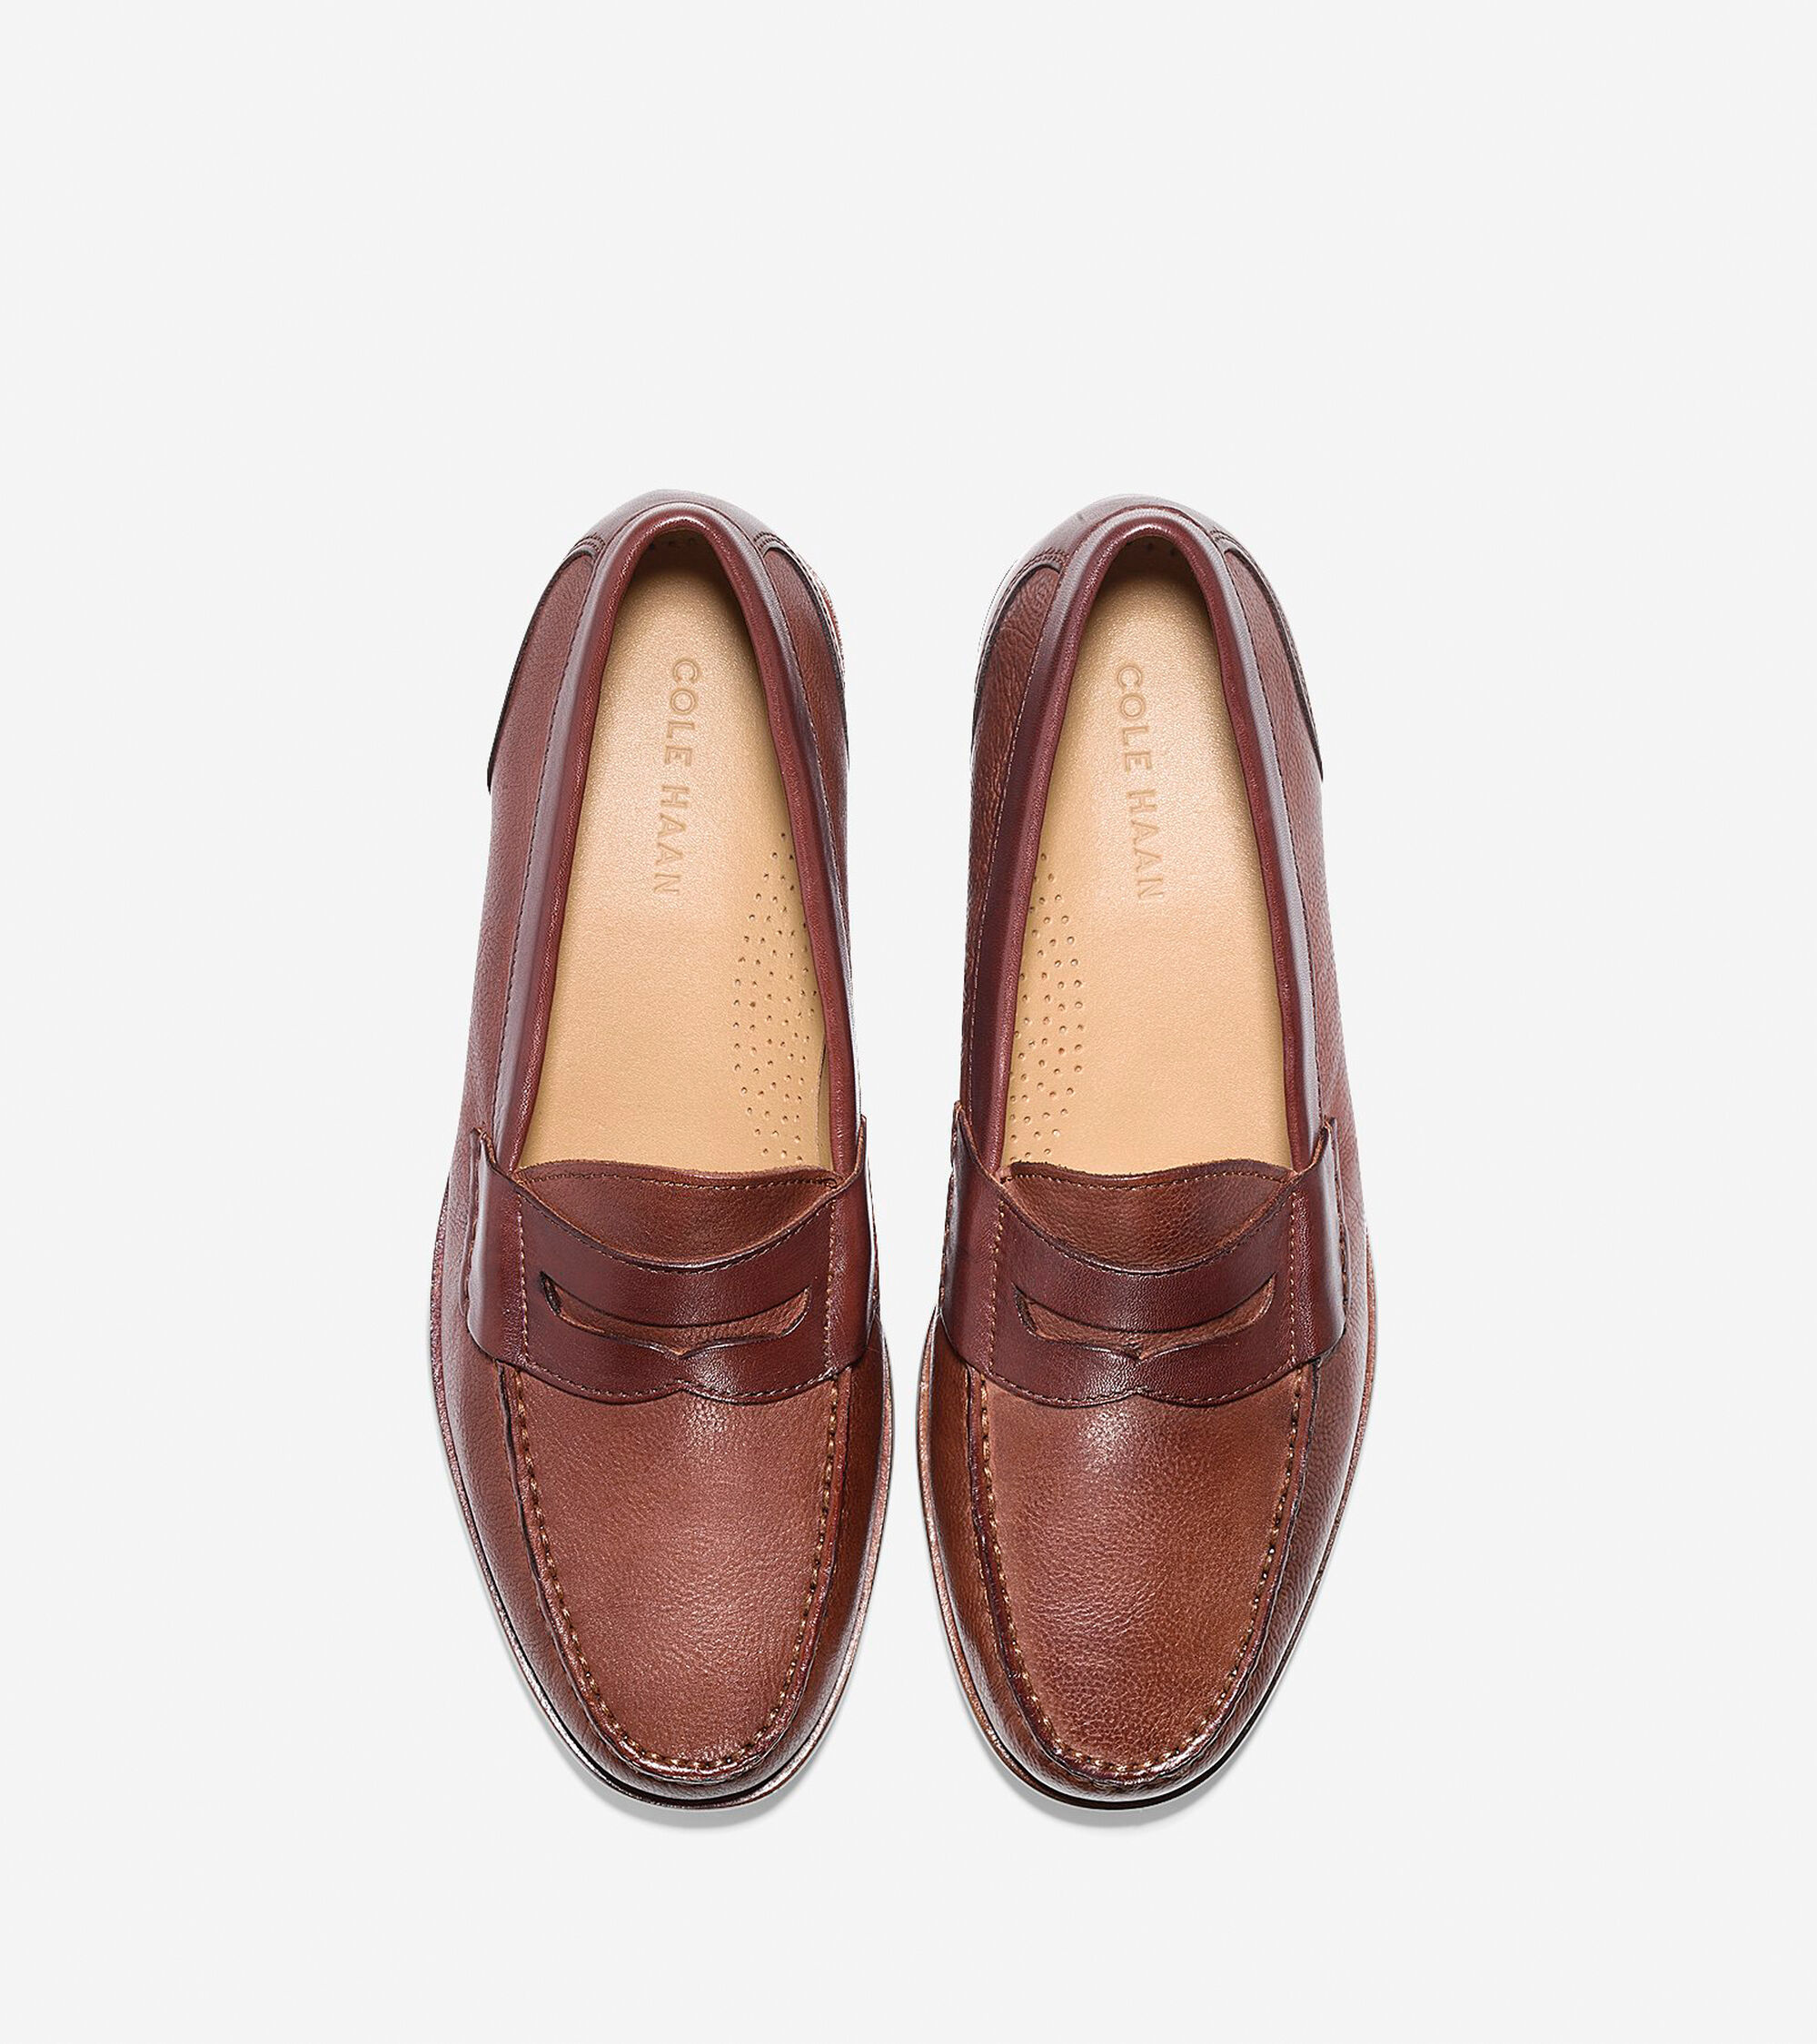 ed8291324dc roll-over to zoom. Fairmont Penny Loafer · Fairmont Penny Loafer ...